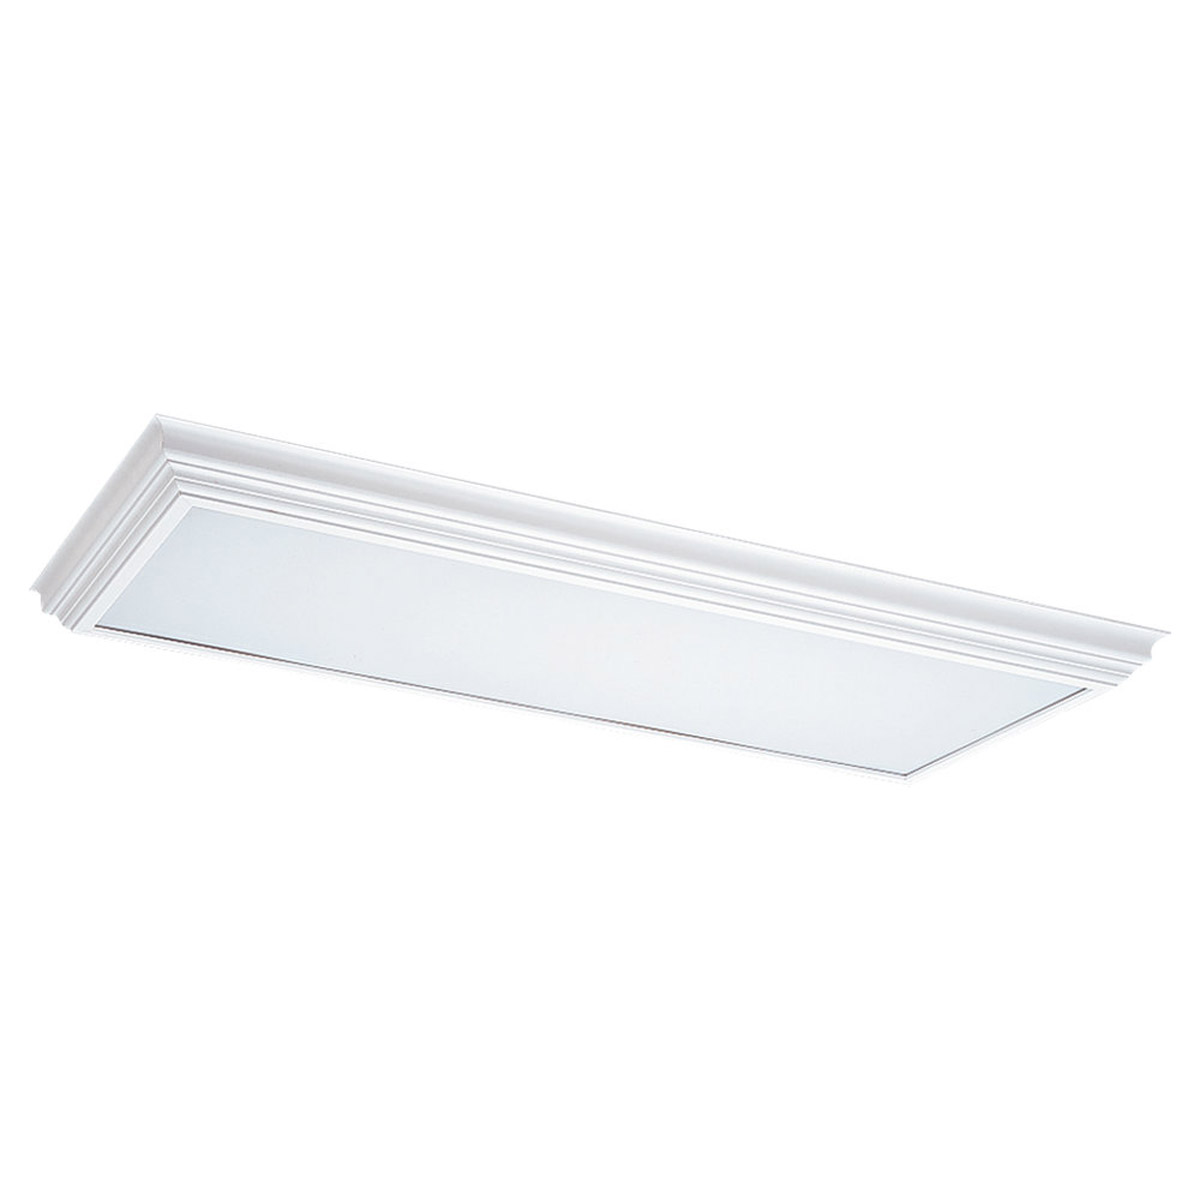 Sea Gull Lighting Signature 4 Light Fluorescent Trim Only in White 5979-15